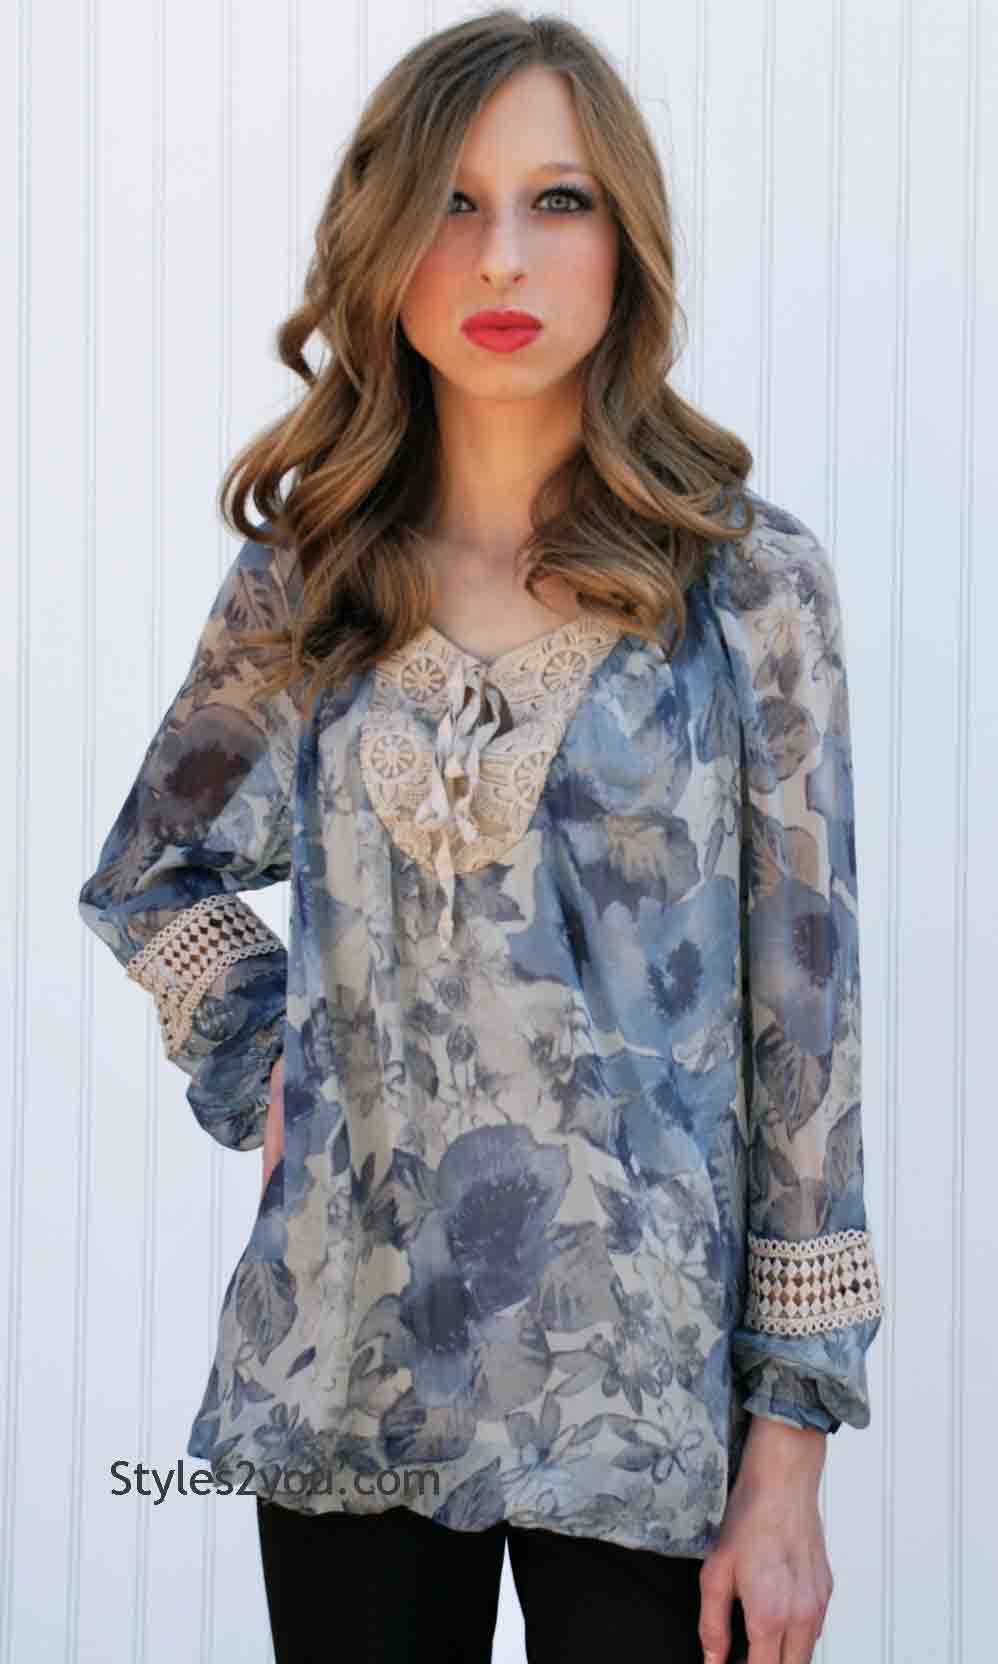 099cf18a1234a Lila Ladies Silk Blouse In Floral And Cream  Micky Lila Ladies Silk Blouse   -  59.00